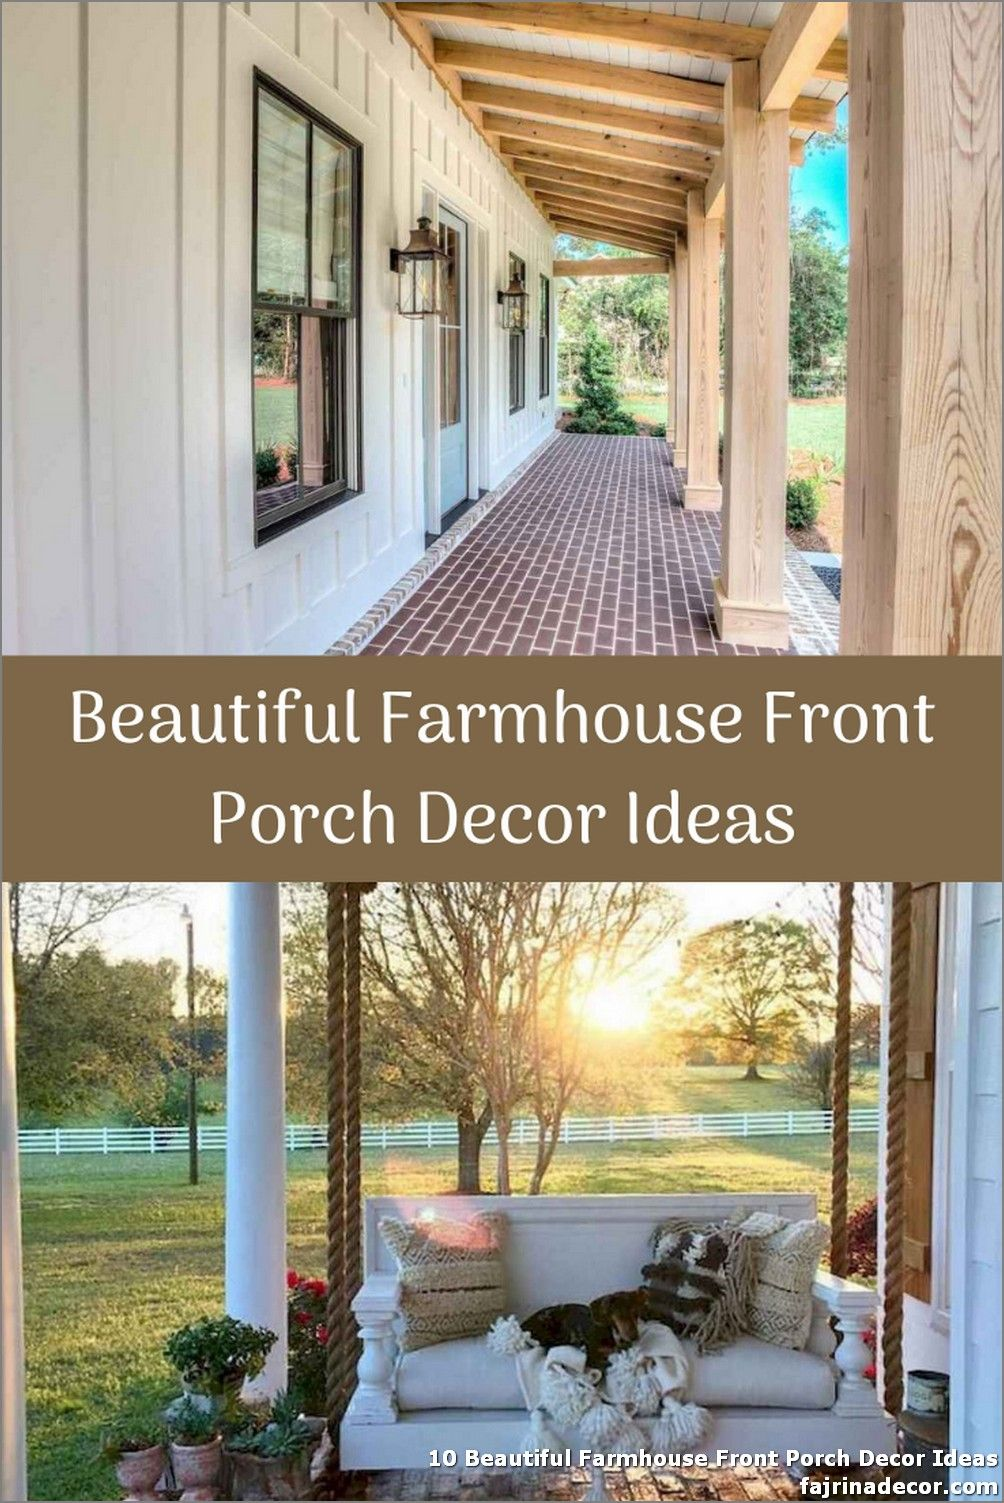 10 Beautiful Farmhouse Front Porch Decor Ideas Unfinished